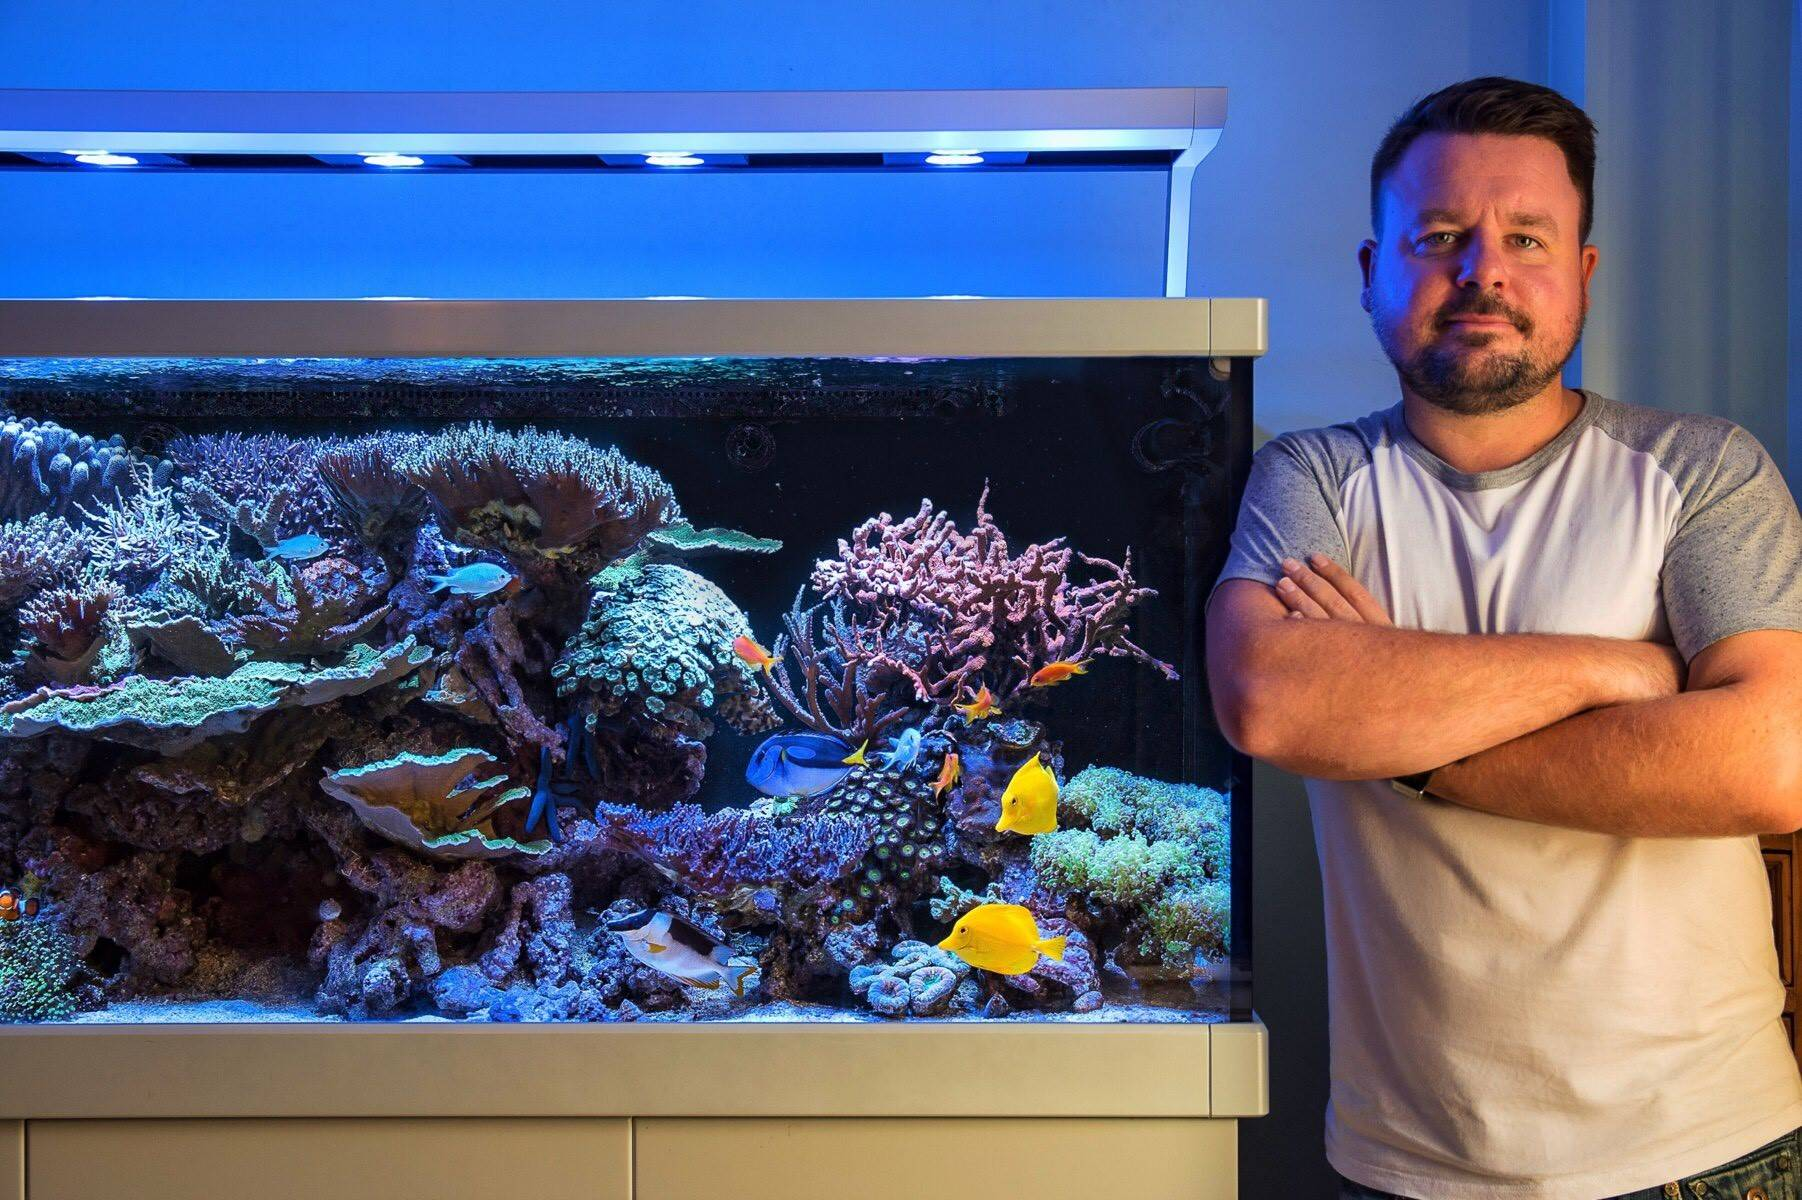 Liam Lovatt's Red Sea Max S-650 Mixed Reef Aquarium - A Featured Tank from the UK!